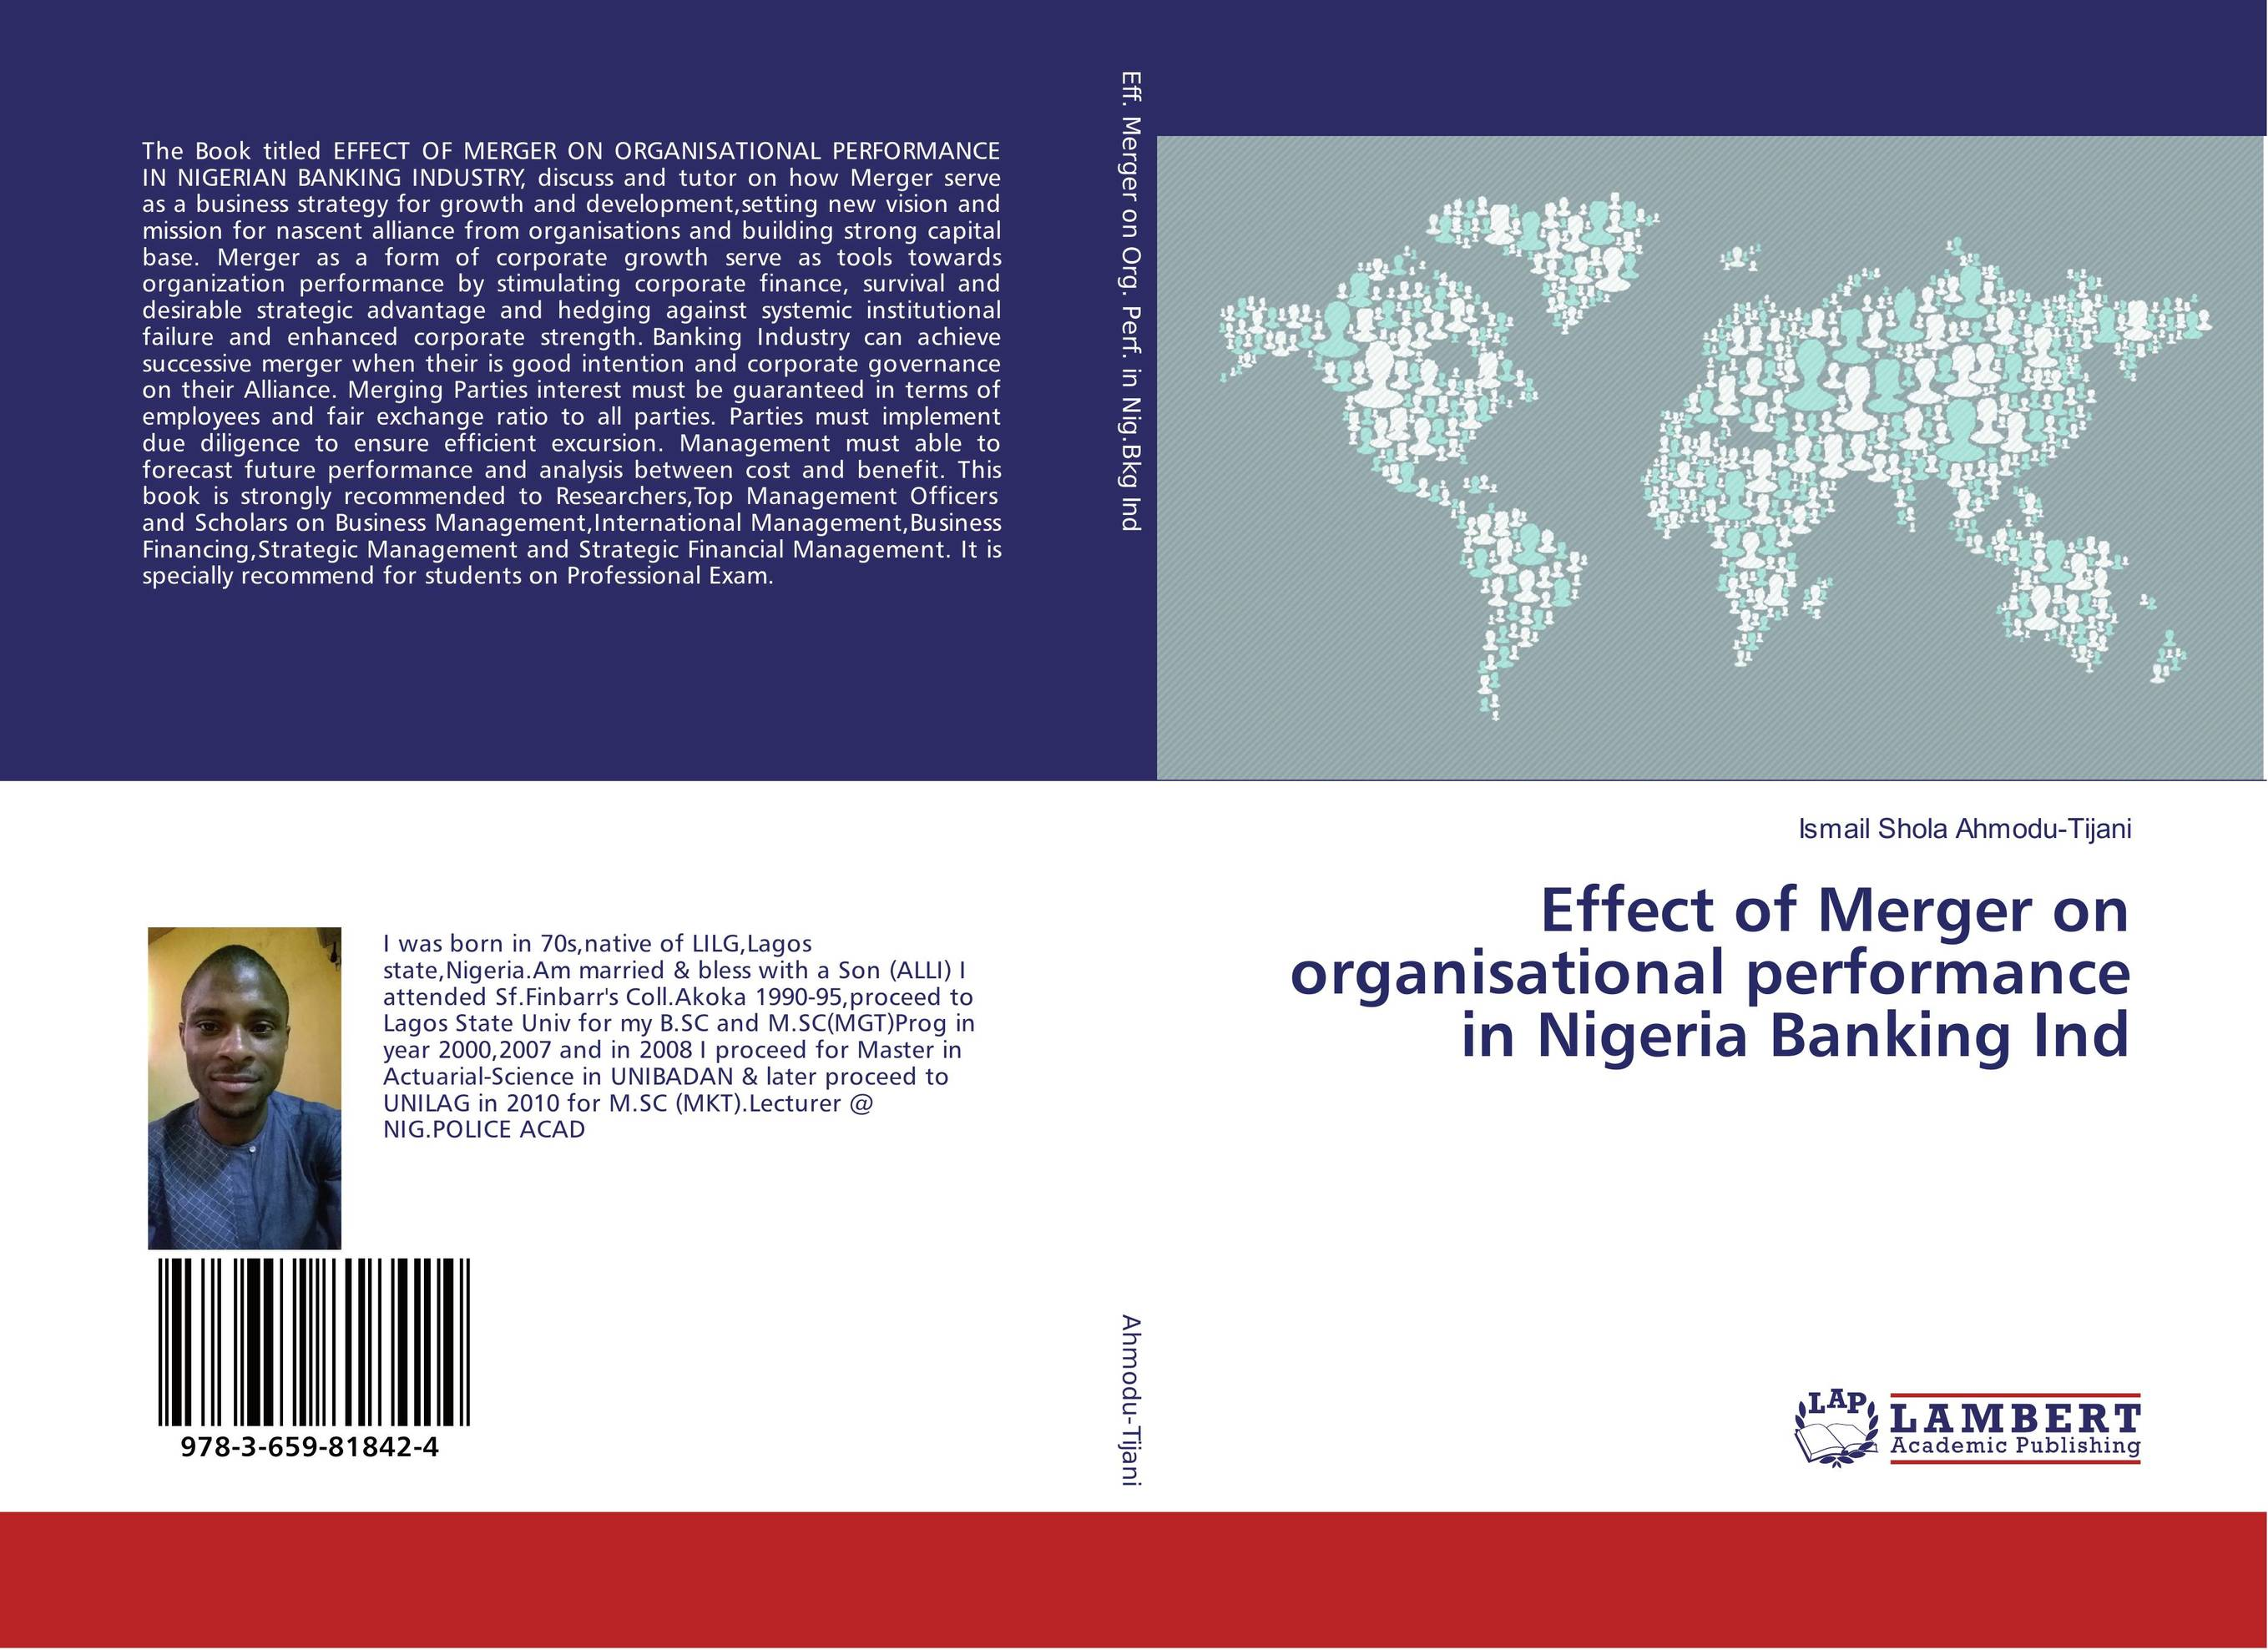 mergers and acquisitions on the nigerian banking industry Corporate development: mergers and acquisitions course team dr ibrahim idrisu  incentives on consolidation in the nigerian banking industry unit10: products module 3 unit 11: product-mix strategies  consolidation in the oil and gas industry: mergers and acquisitions 44.